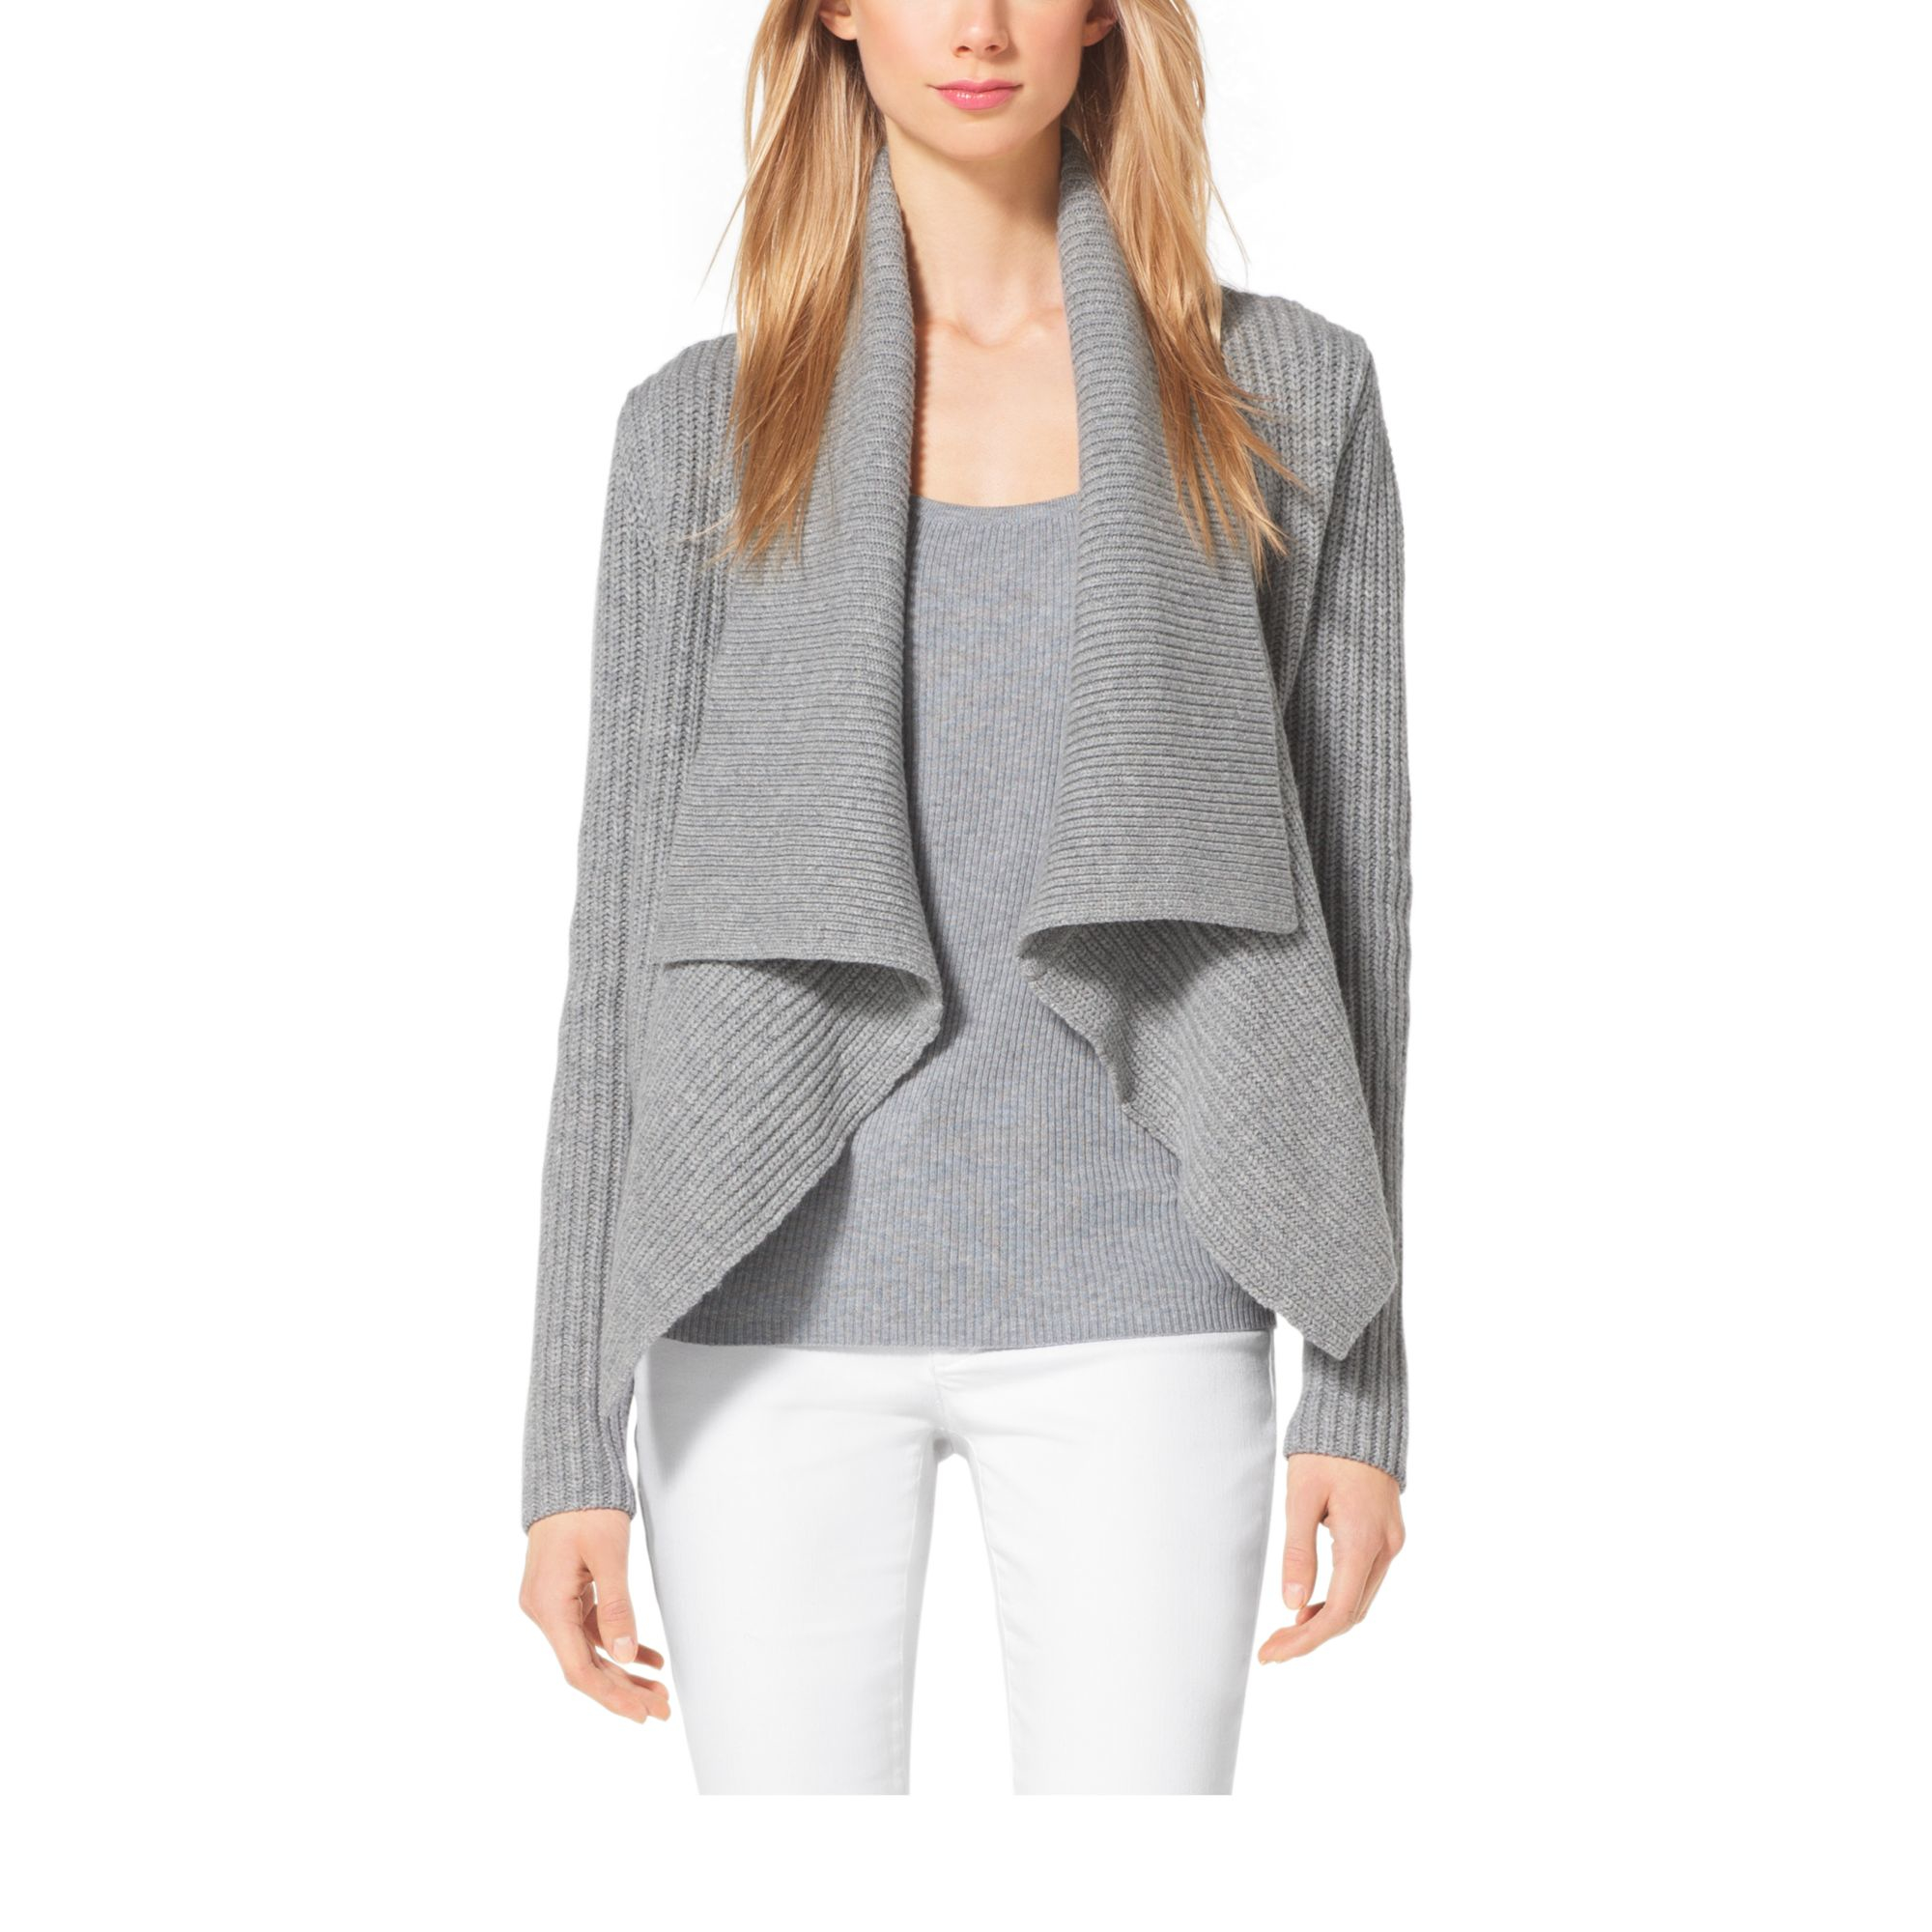 Michael kors Draped Shaker-stitch Wool And Cashmere Cardigan in ...